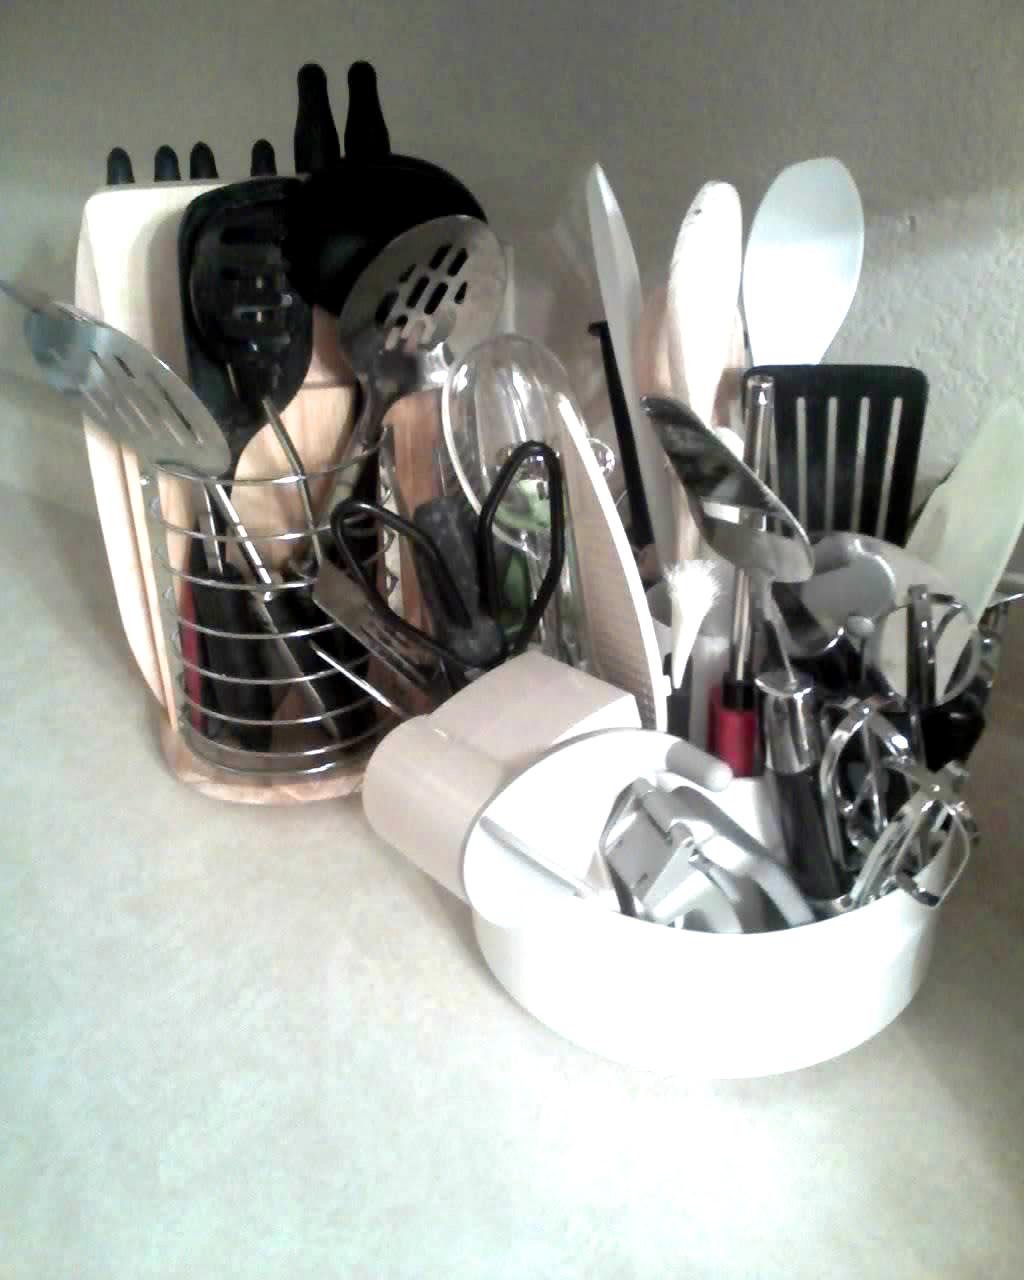 Messy Kitchen Baking: Corinner-Elly: Clean, Clear & Clutter-Free: Organizing